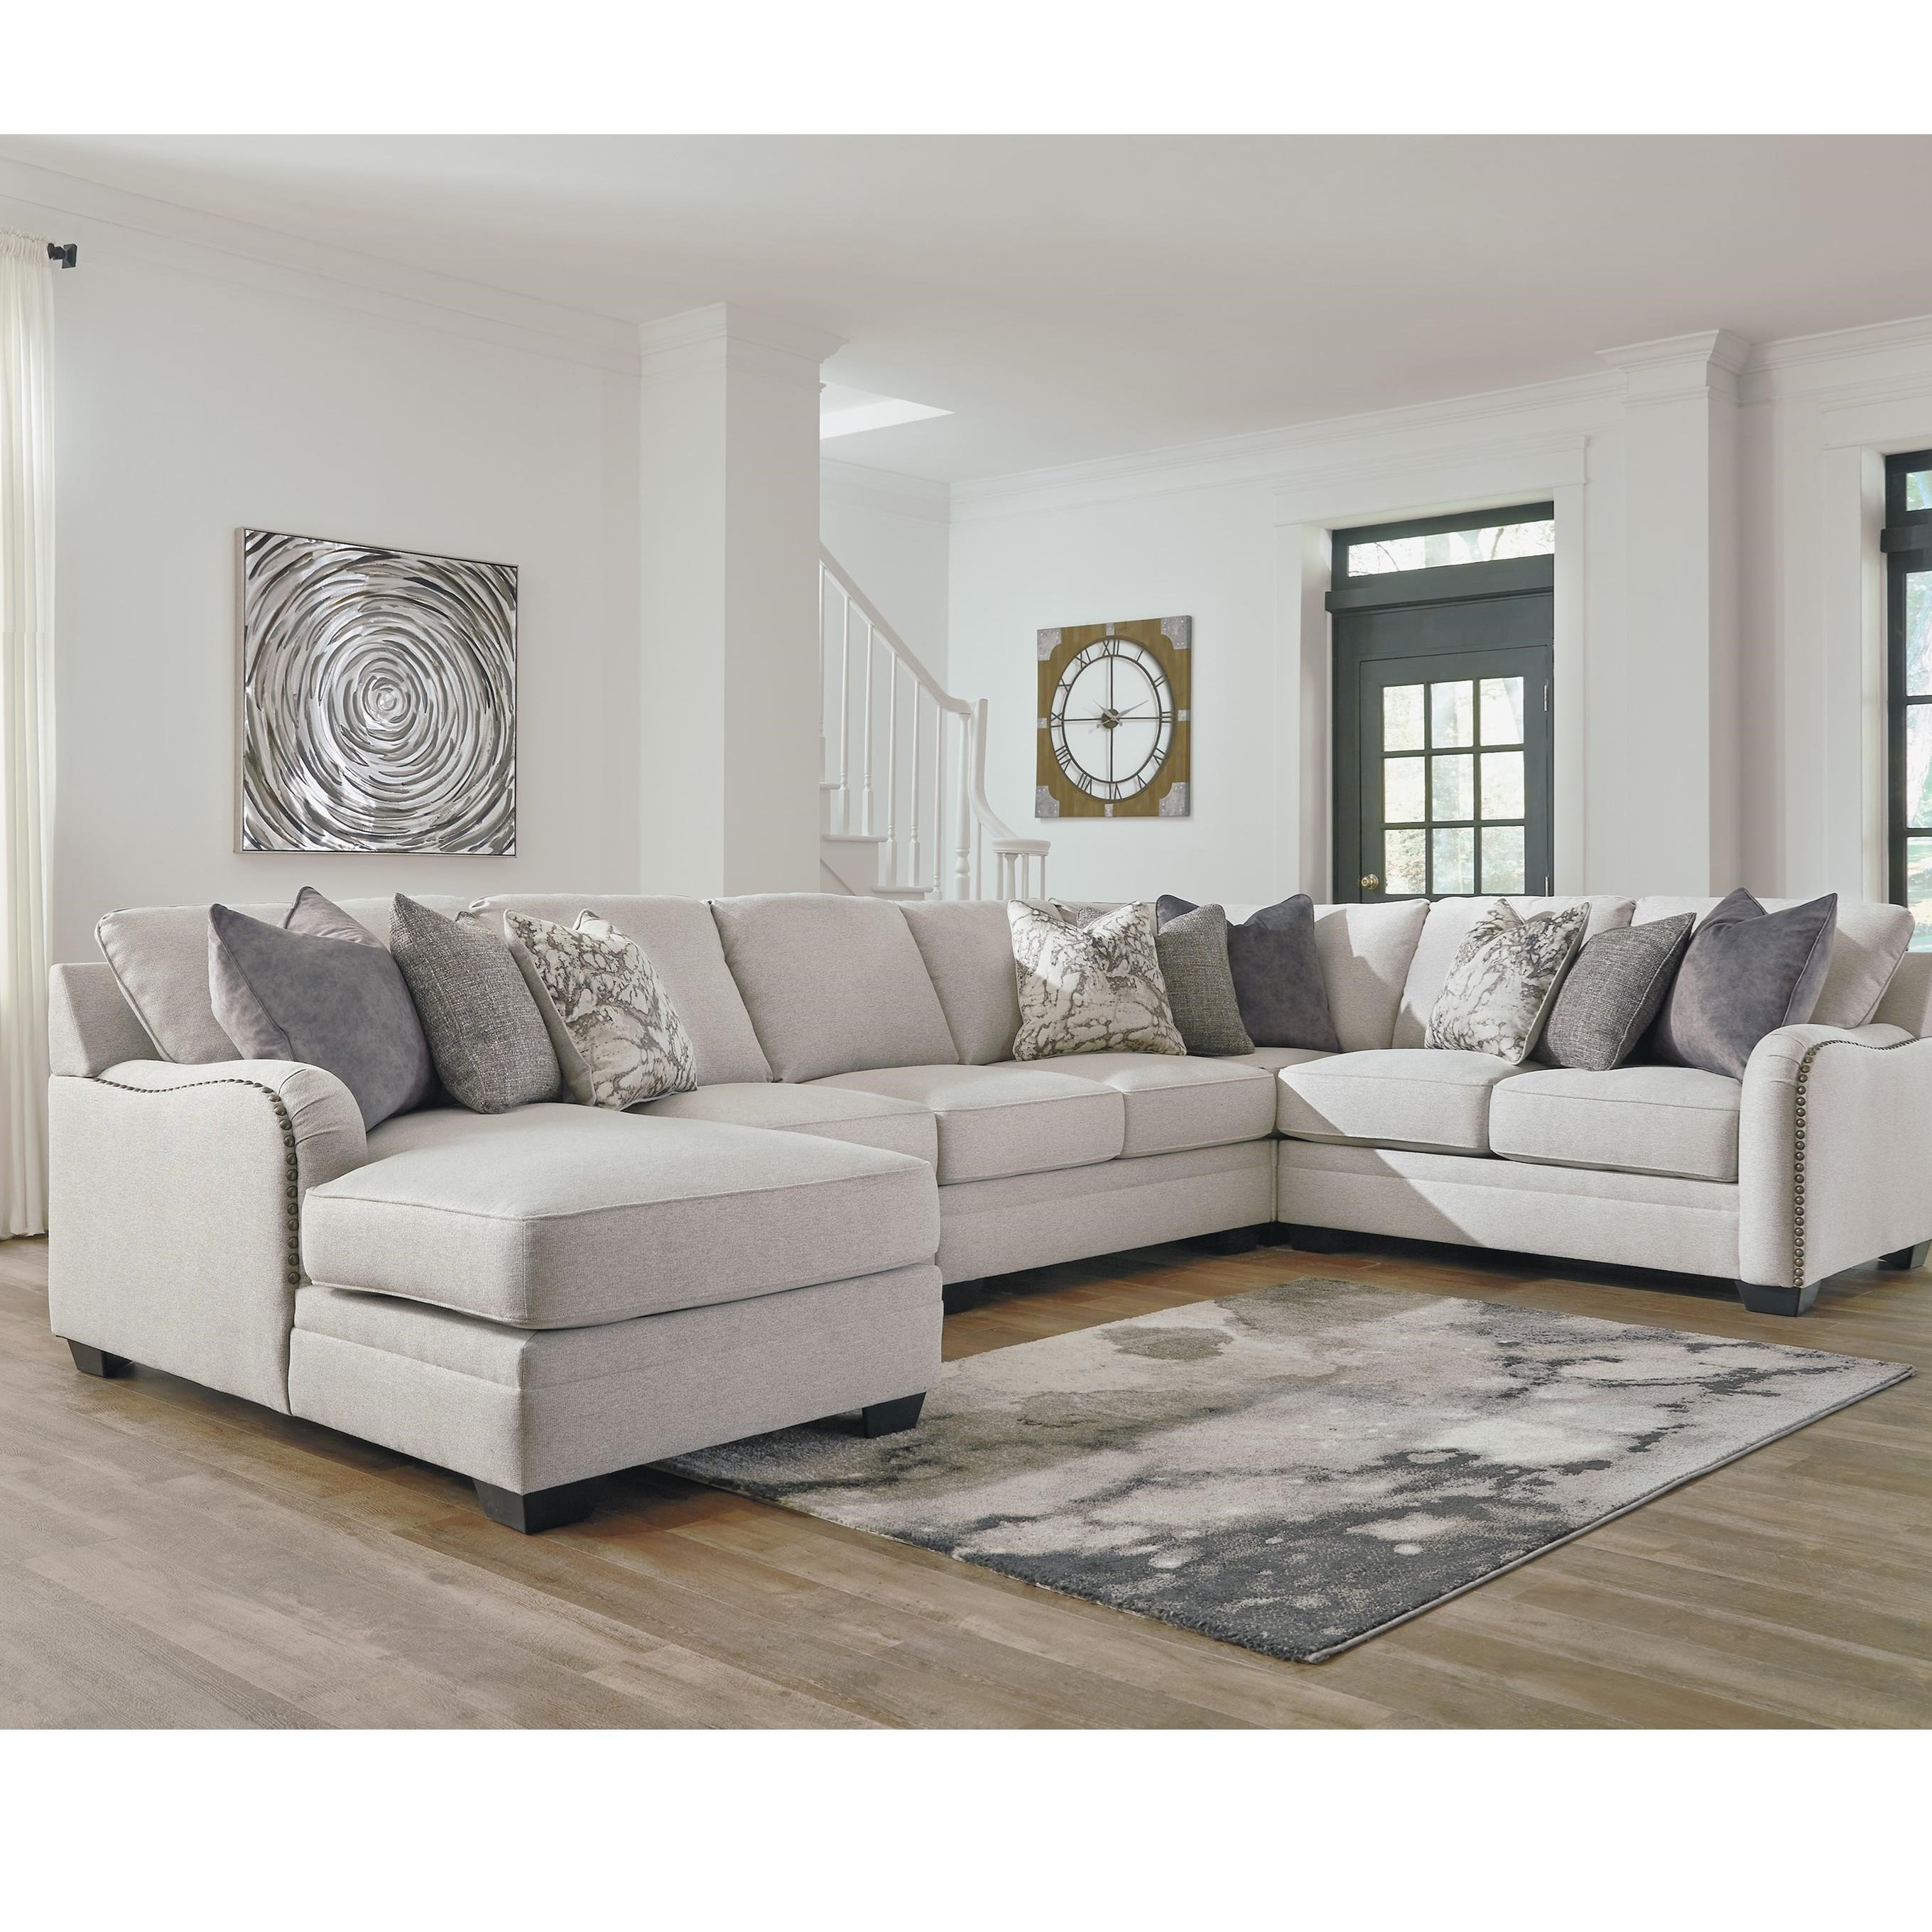 Benchcraft By Ashley Dellara5 Piece Sectional ...